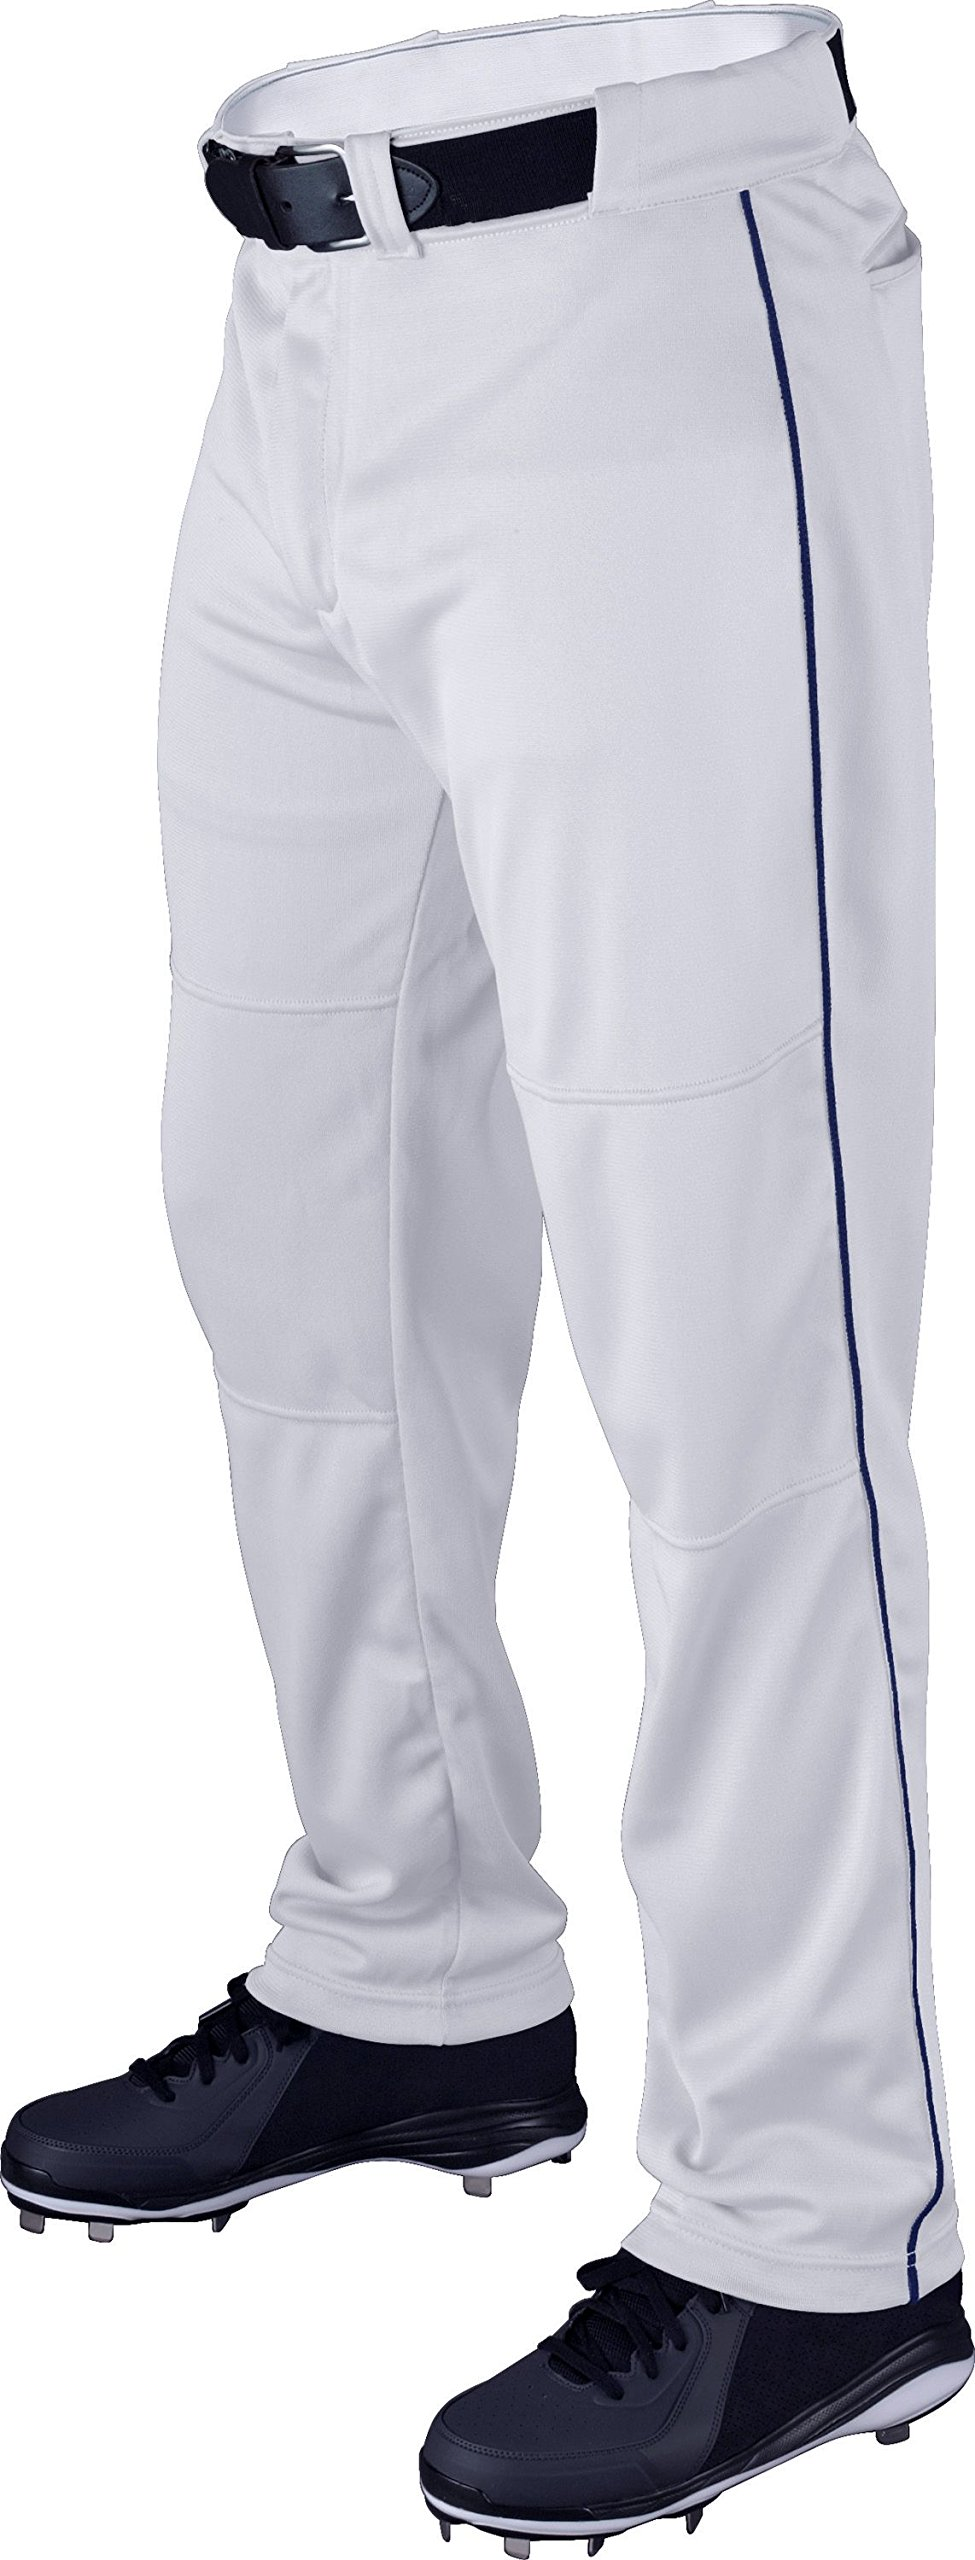 Wilson Youth Classic Relaxed Fit Piped Baseball Pant, White/Royal, Medium by Wilson